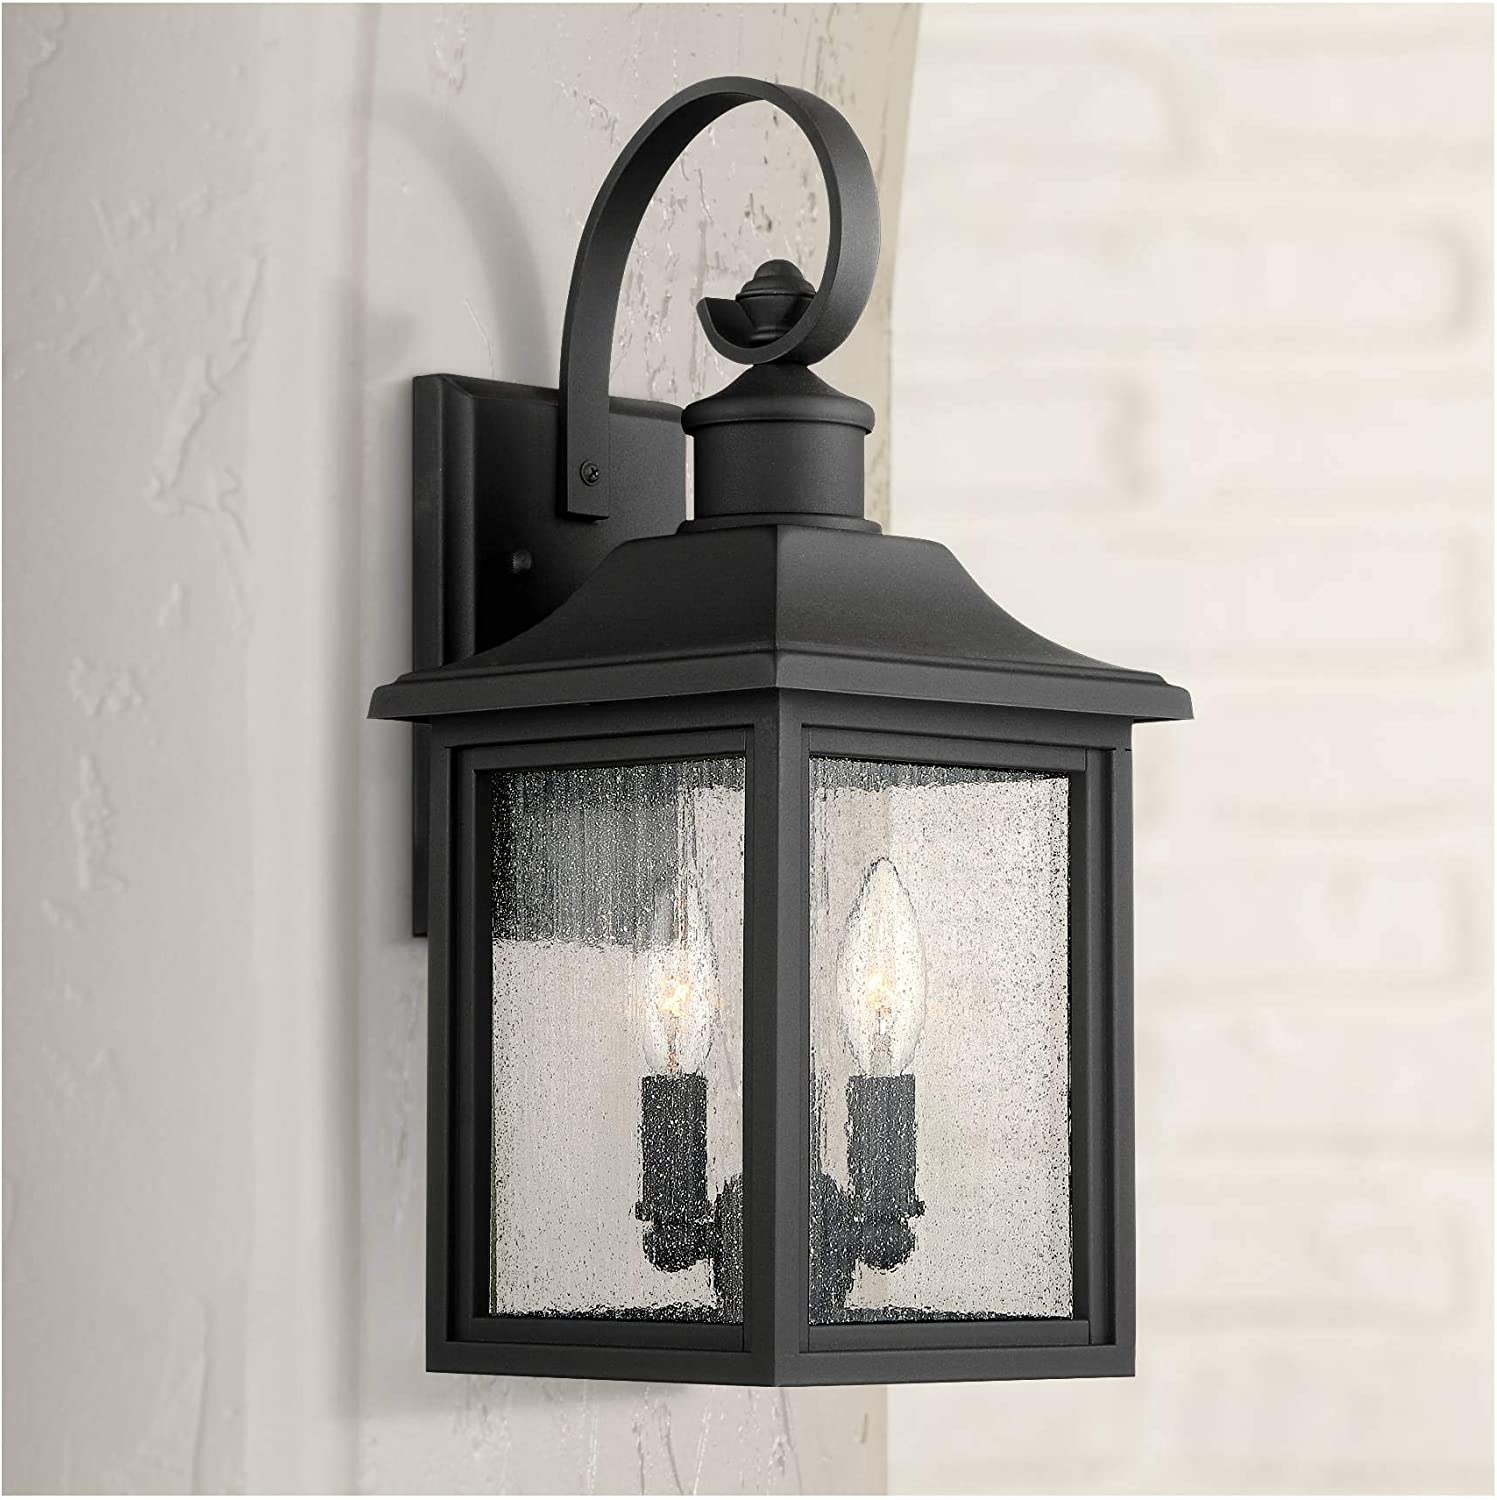 Moray Bay Max 62% OFF Outdoor Wall Light Fixture Black In a popularity Steel 4